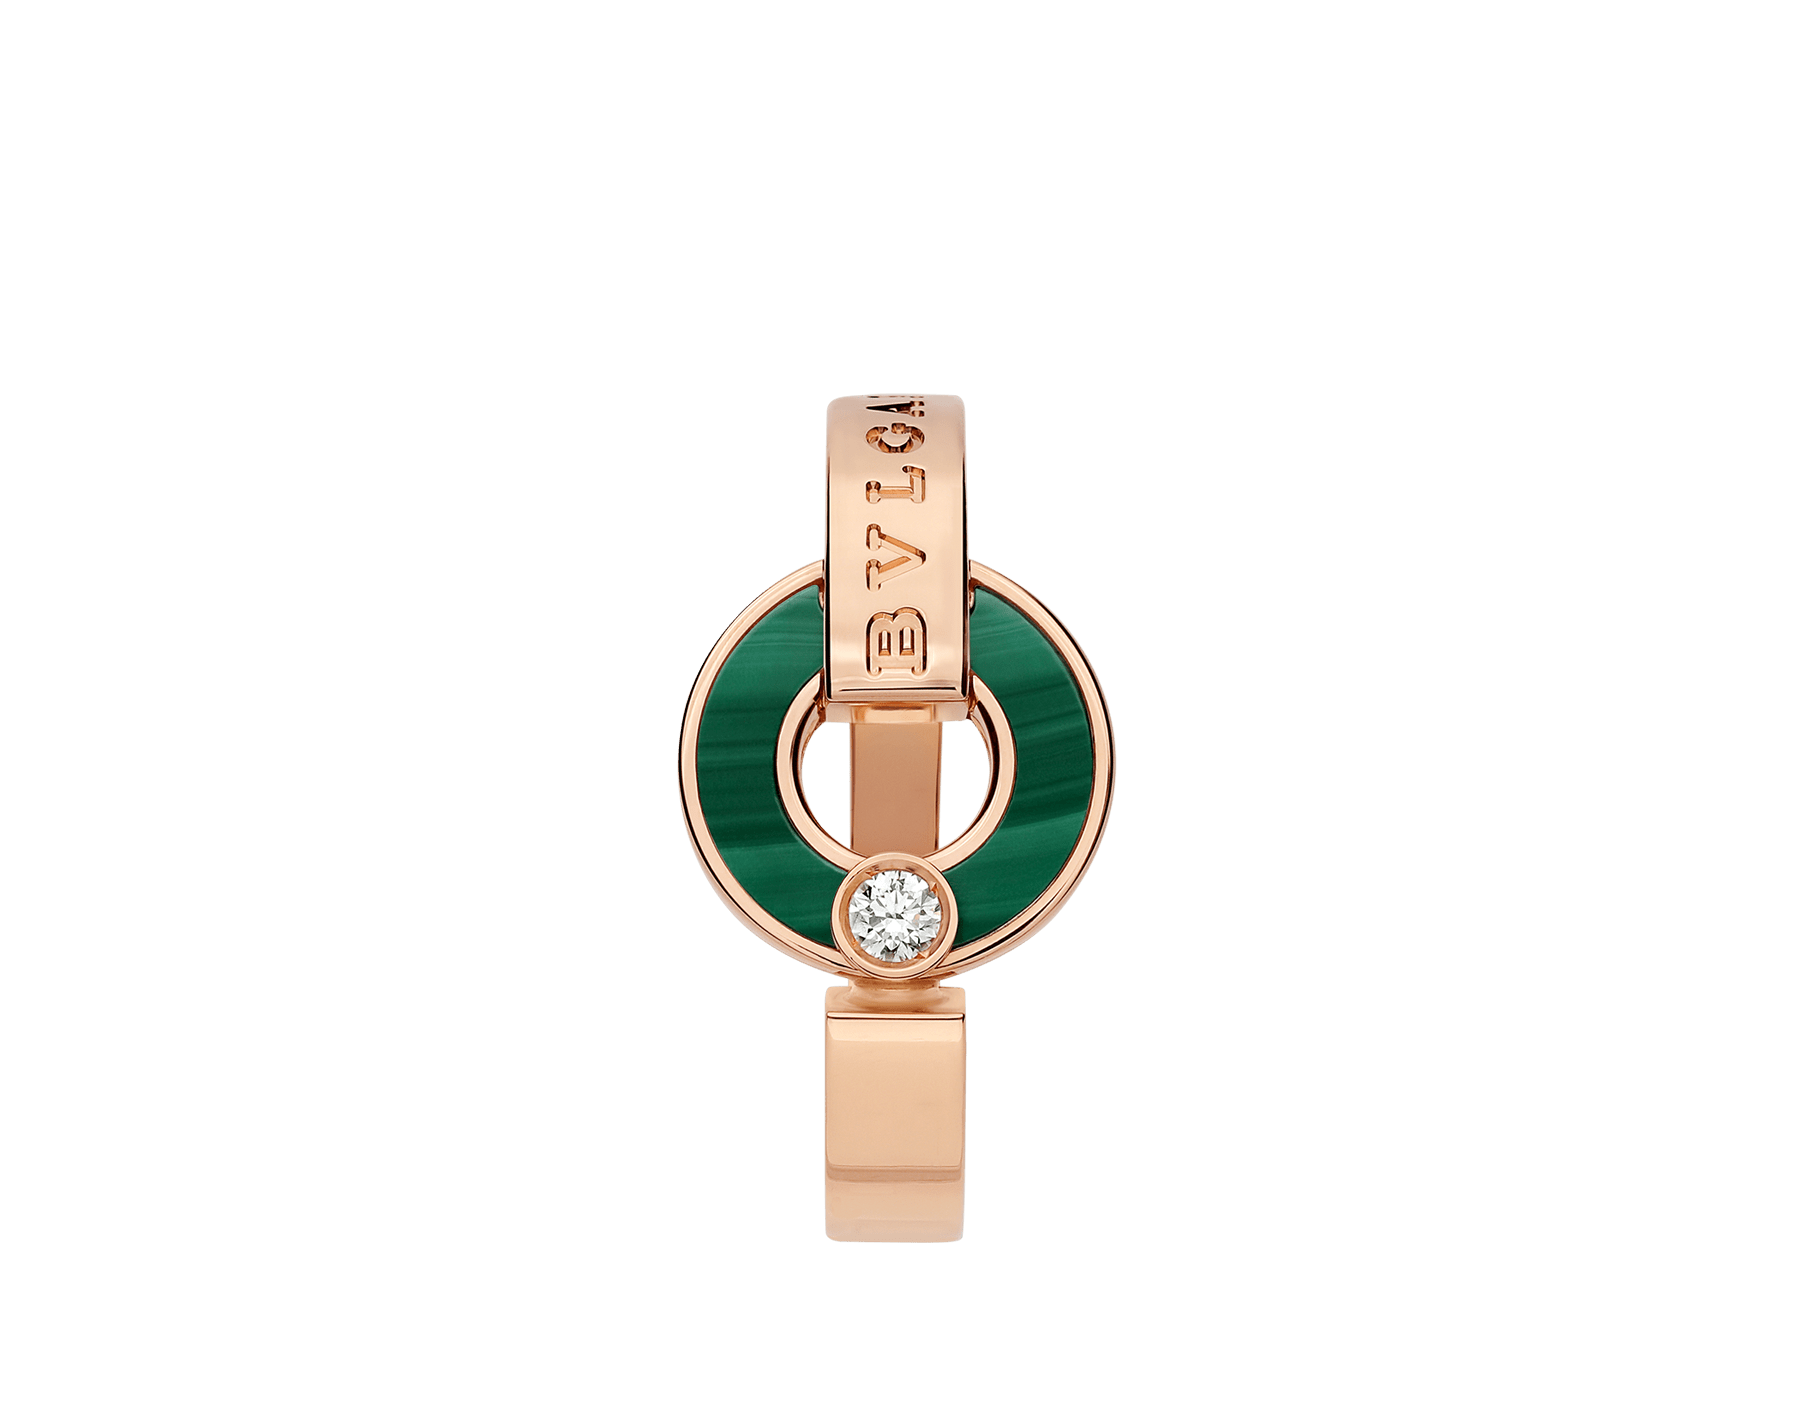 BVLGARI BVLGARI Openwork 18 kt rose gold ring set with malachite elements and a round brilliant-cut diamond AN858946 image 2